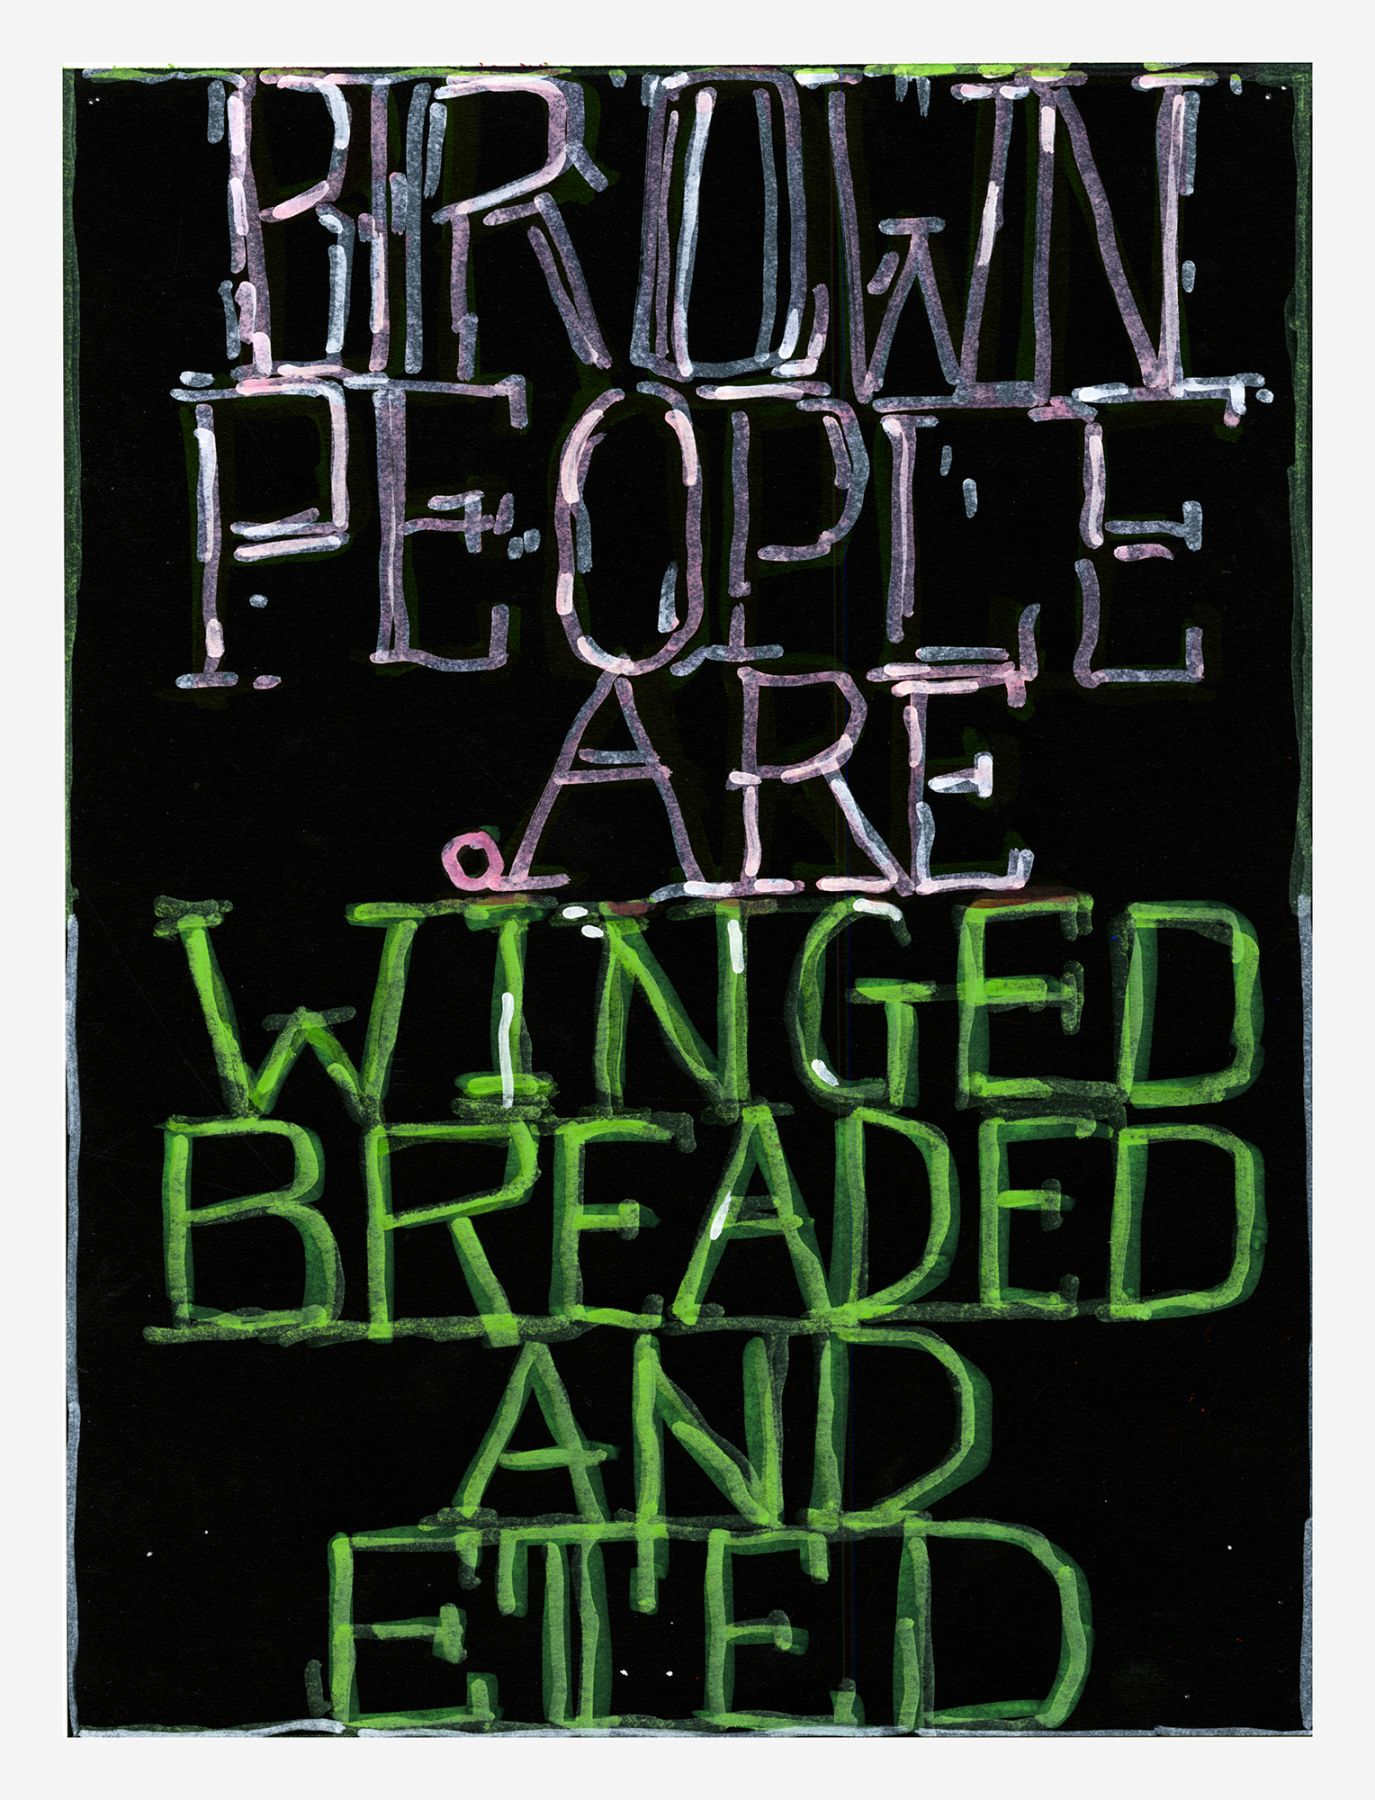 William Pope.L Brown People Are Winged Breaded And Eted, 2012 Mixed media on paper 12 x 9 inches (30.5 x 22.9 cm)